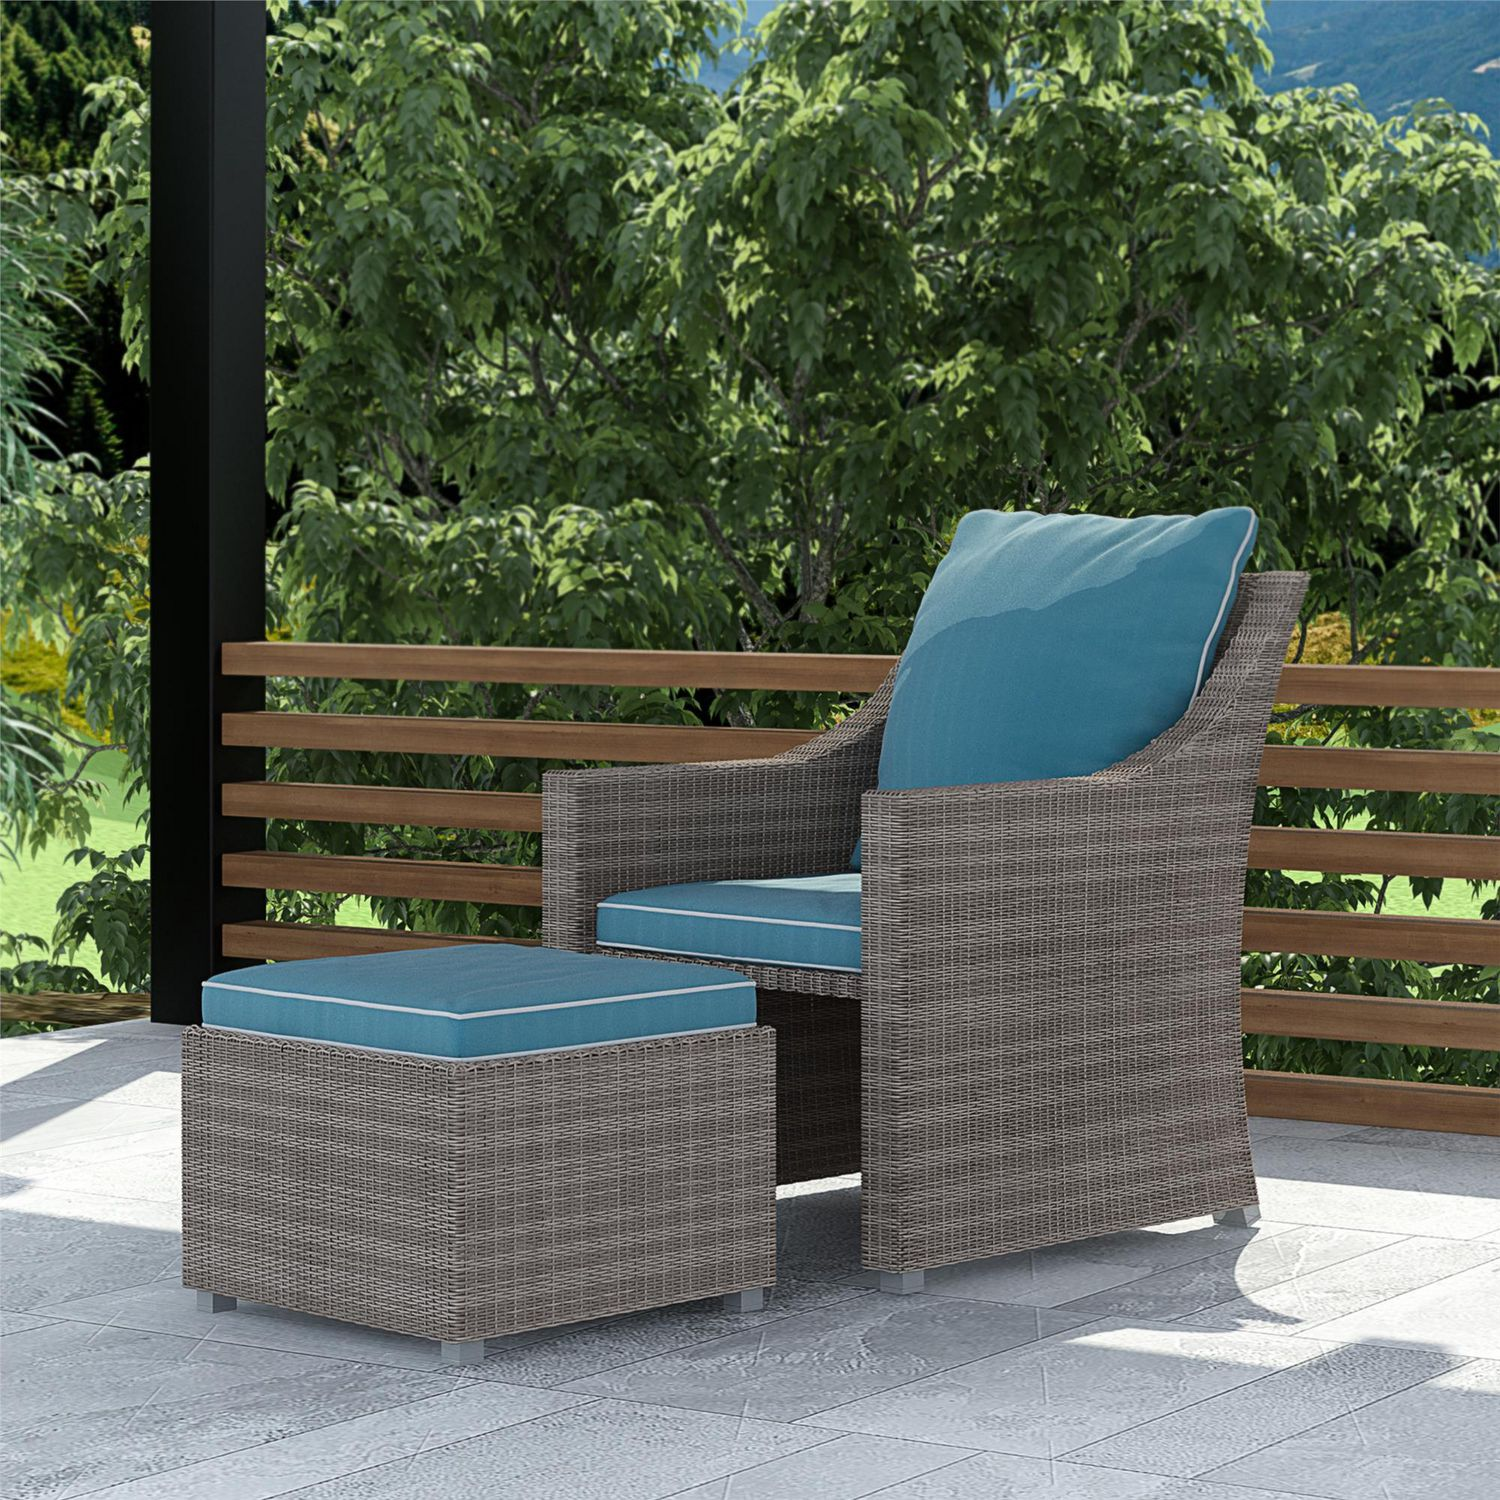 cosco outdoor 2 piece patio set lounge chair multifunctional ottoman table gray wicker teal blue cushions